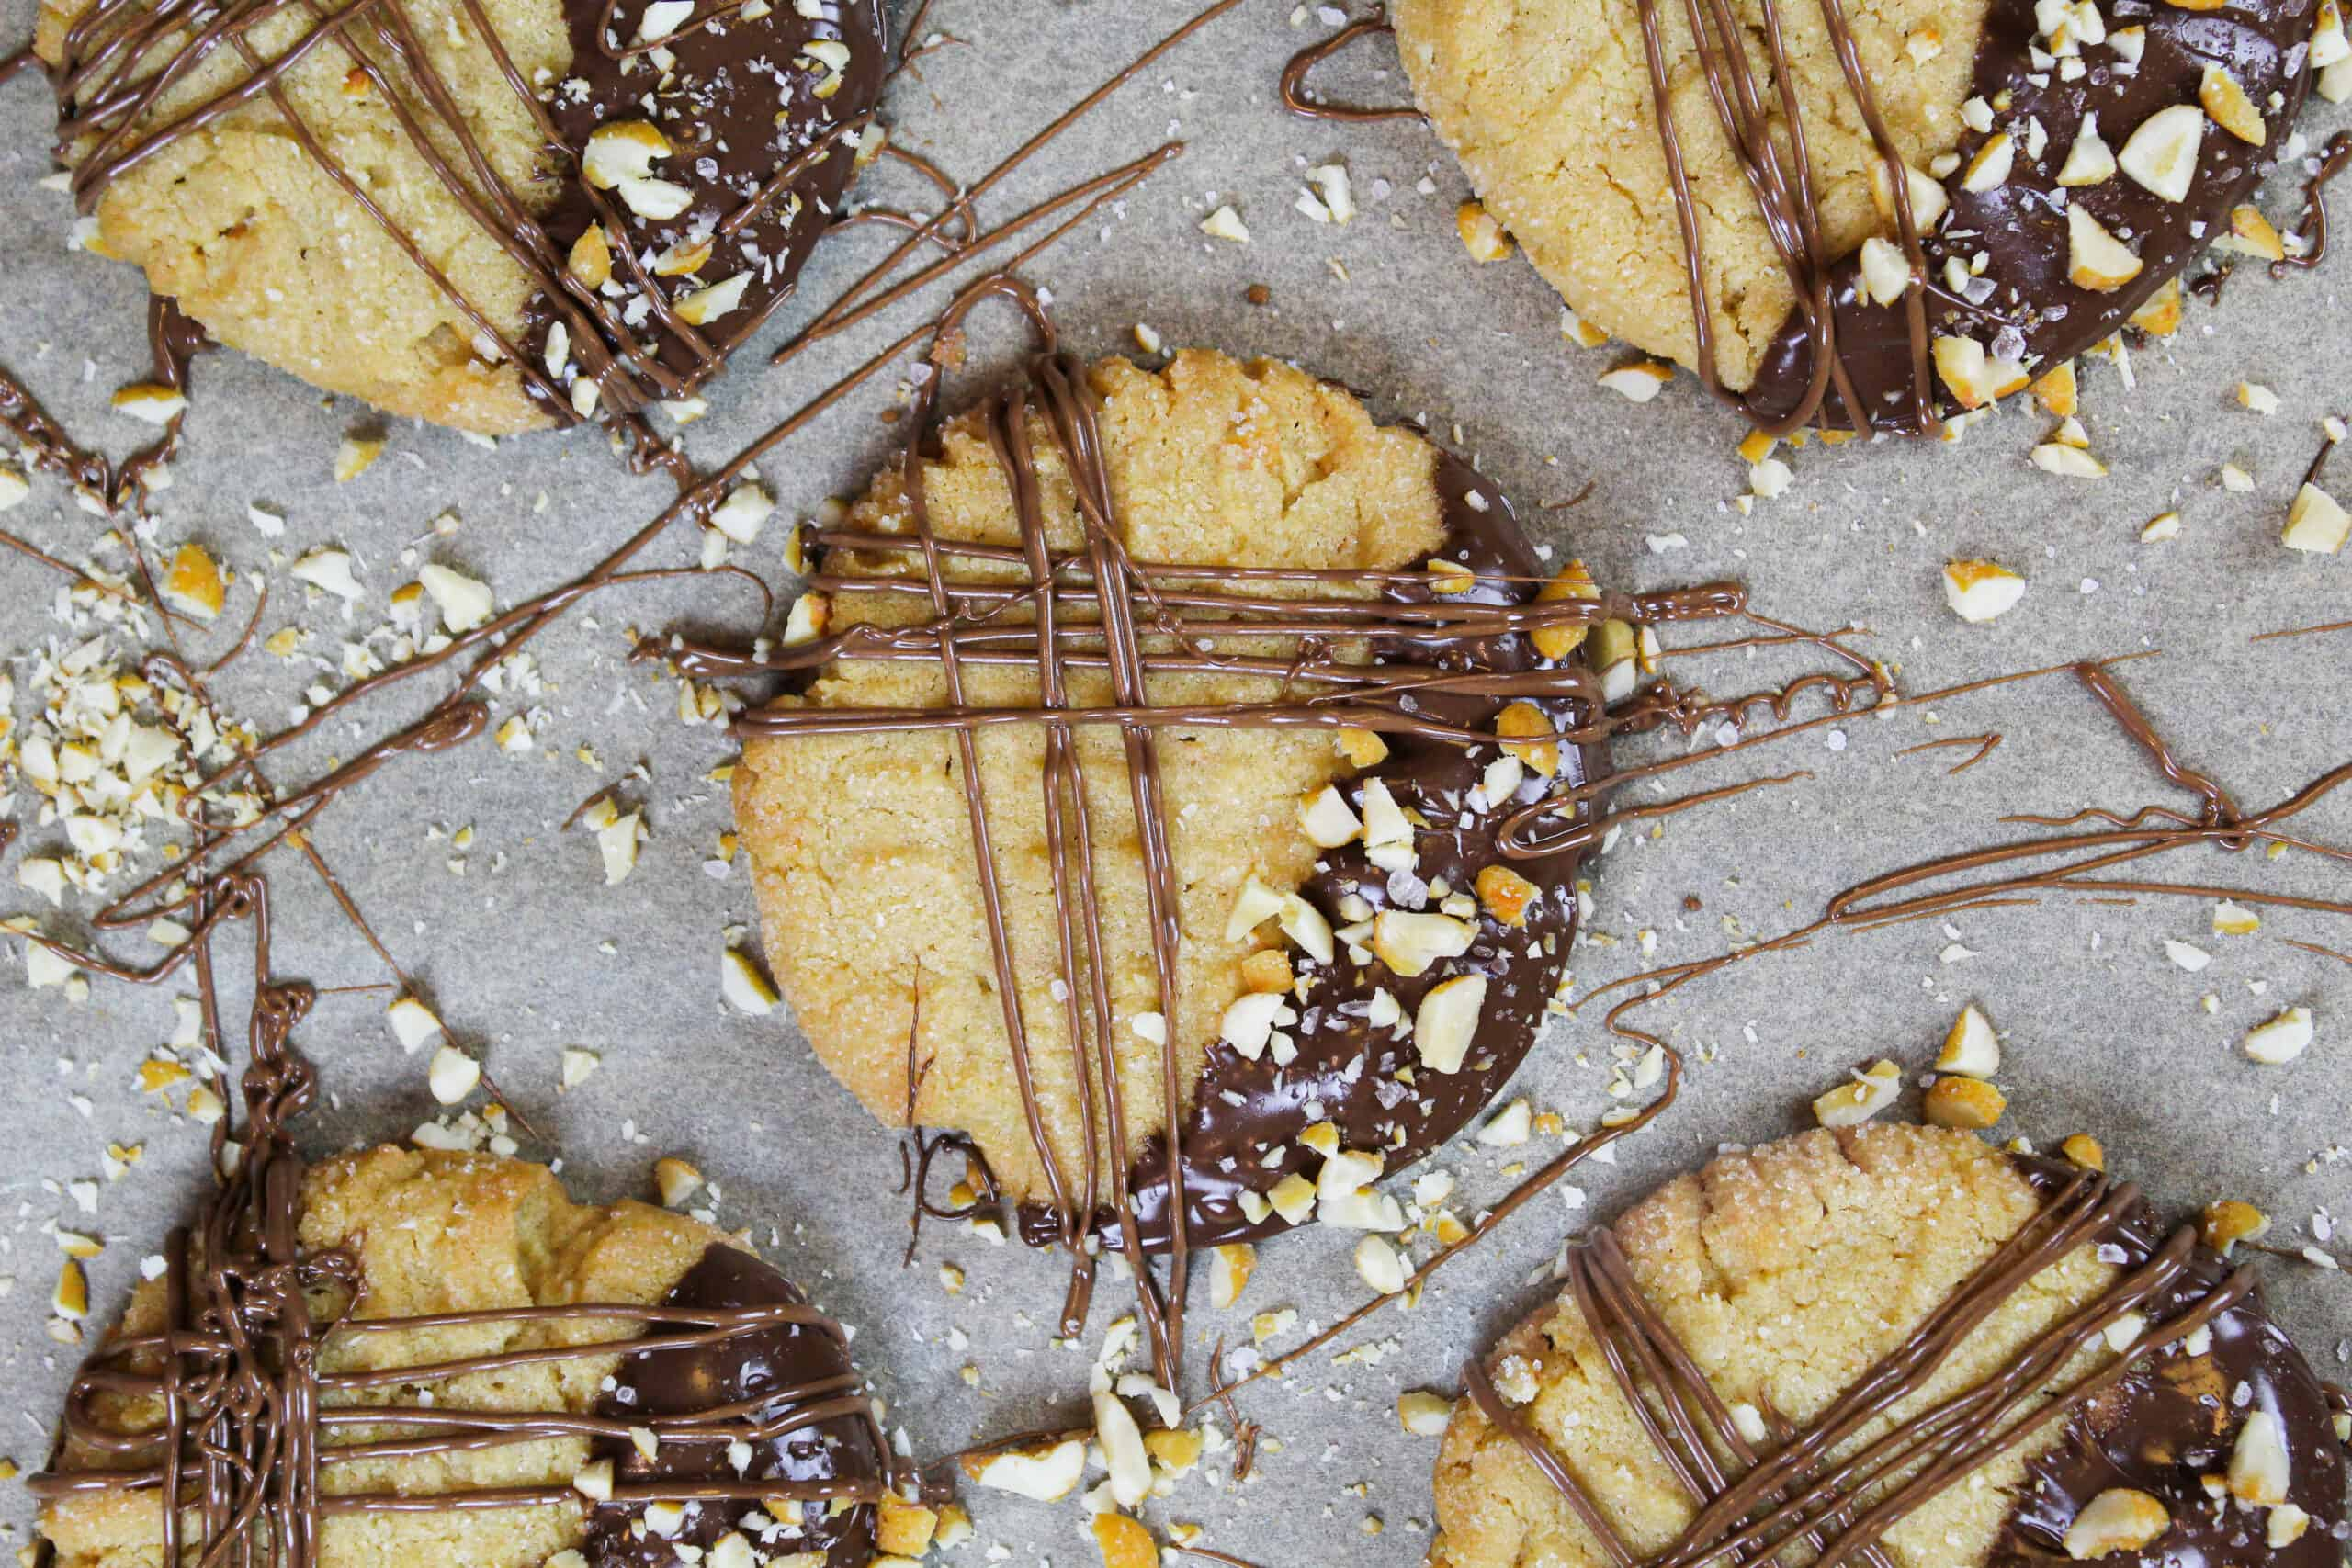 image of chocolate dipped peanut butter cookies decorated with drizzled chocolate